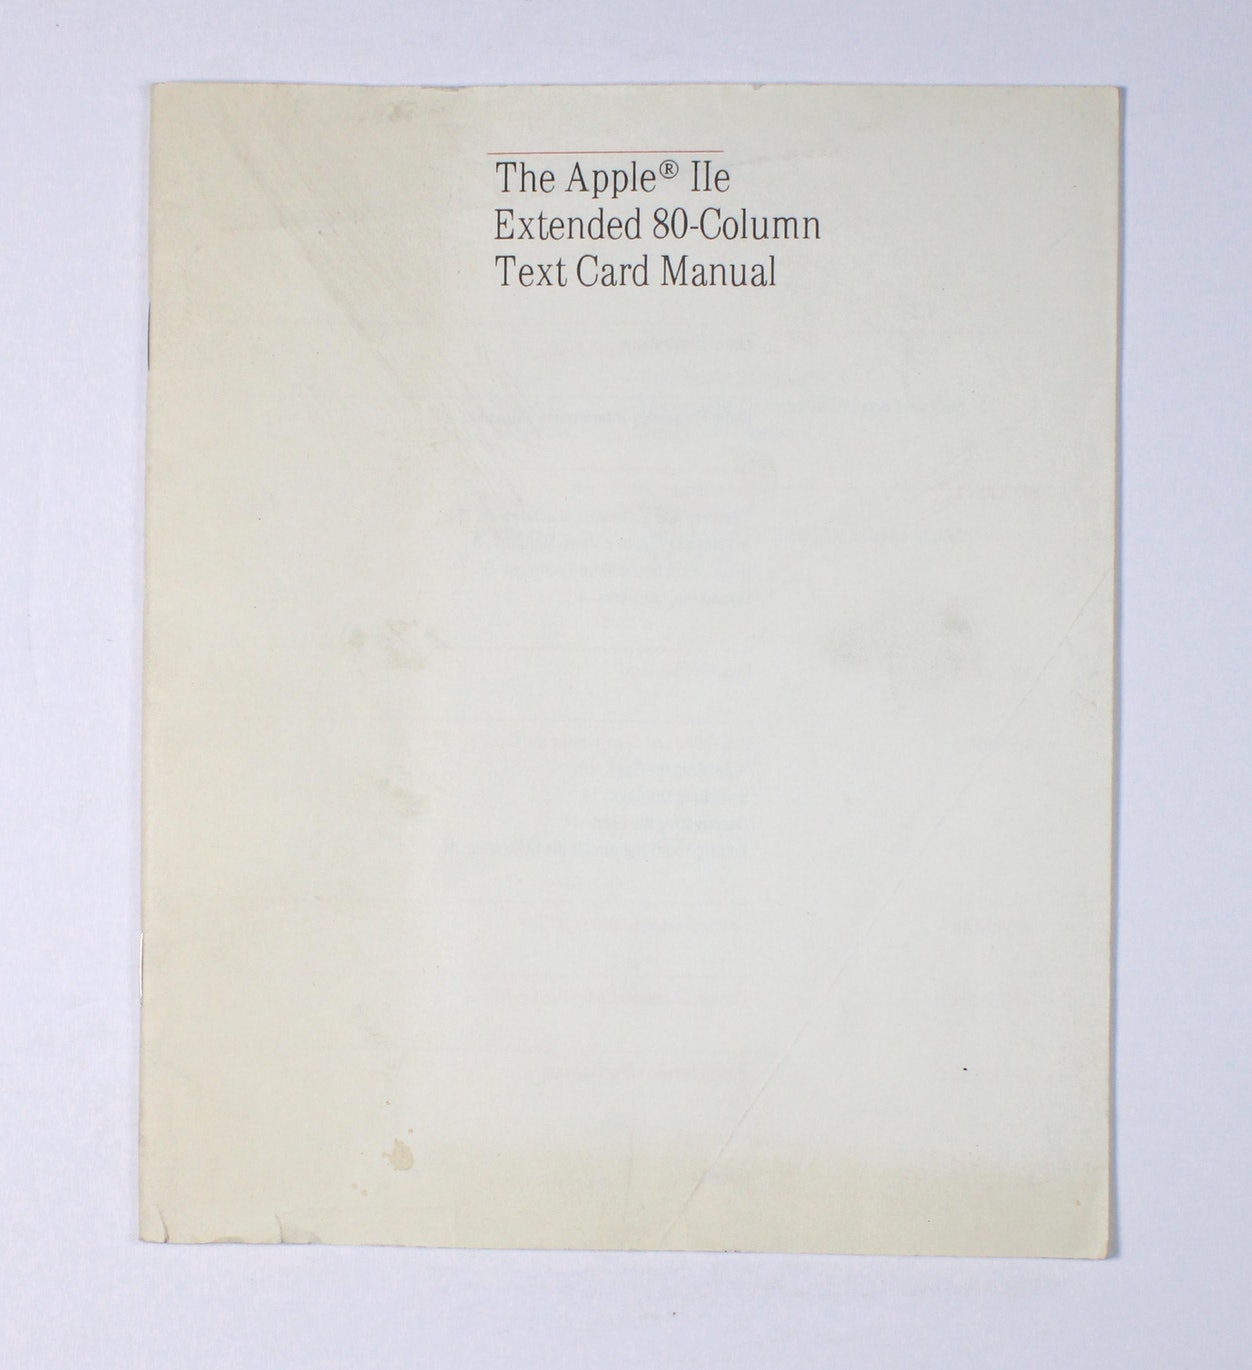 The Apple IIe Extended 80-Column Text Card Manual